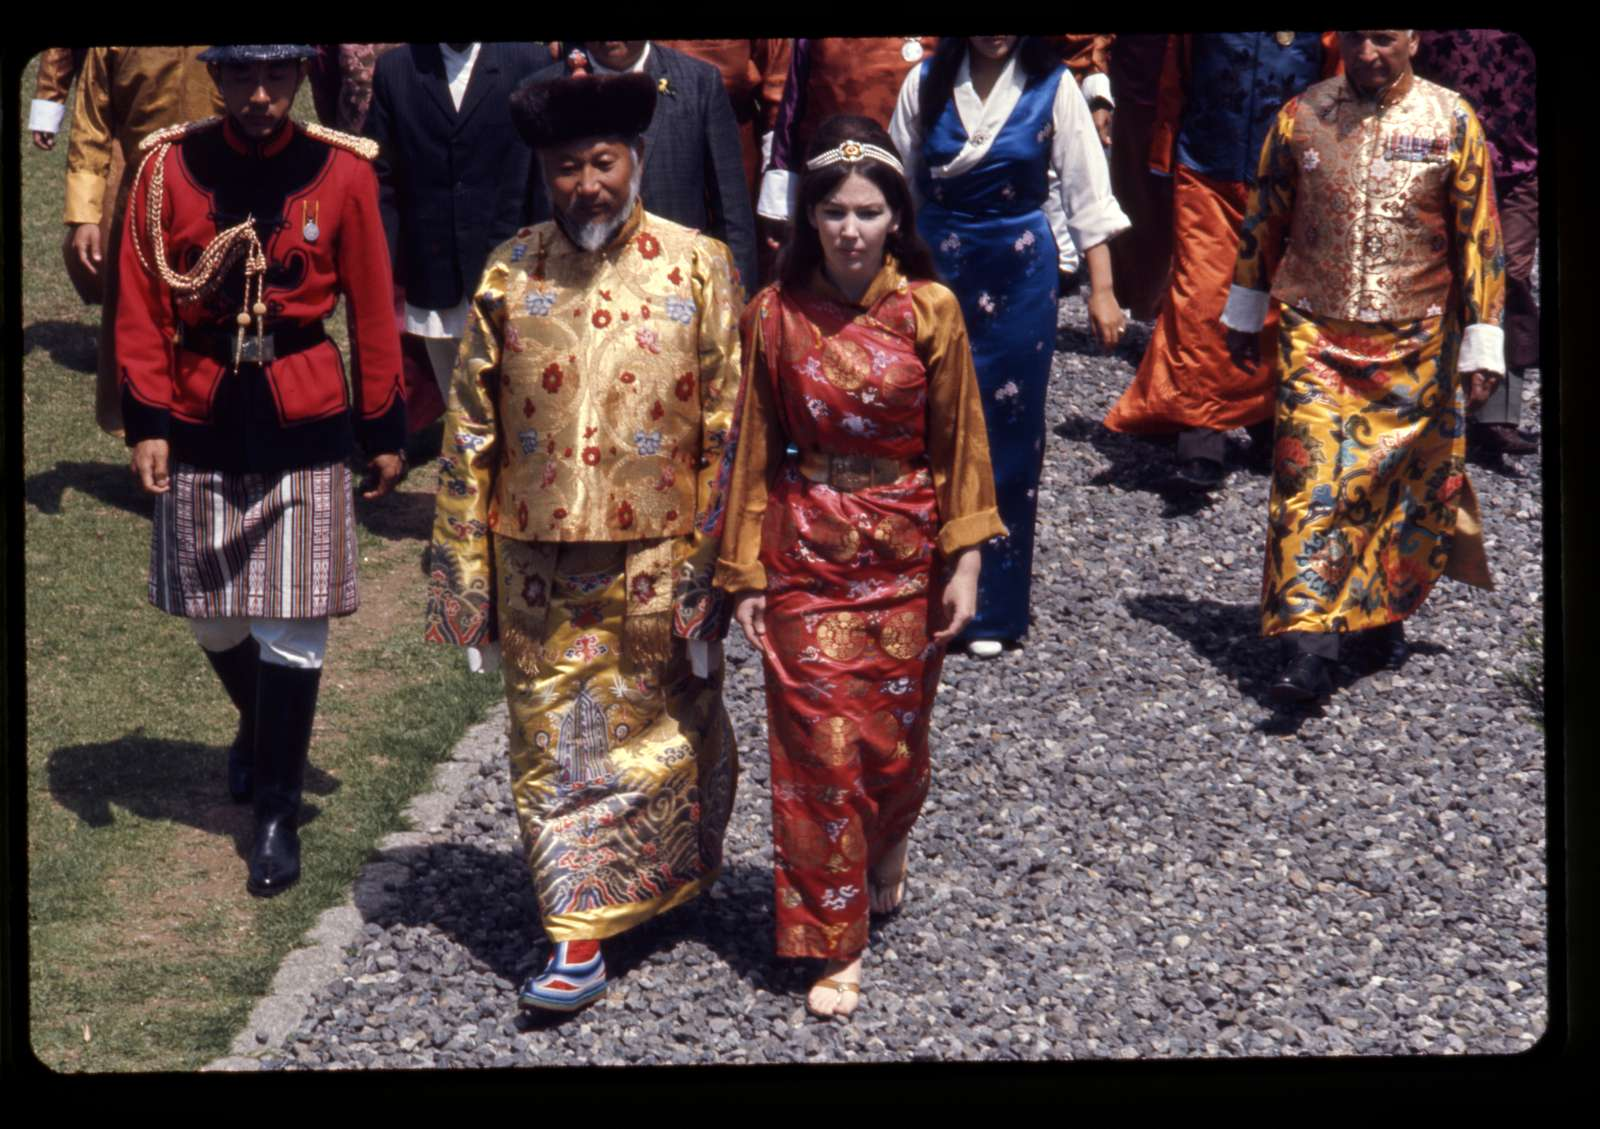 [Palden Thondup Namgyal, King of Sikkim, and Hope Cooke, Queen of Sikkim, in brocaded dress, walking to the Tsuklakhang Main Temple (Palace Temple) during the King's birthday celebration, Gangtok, Sikkim]